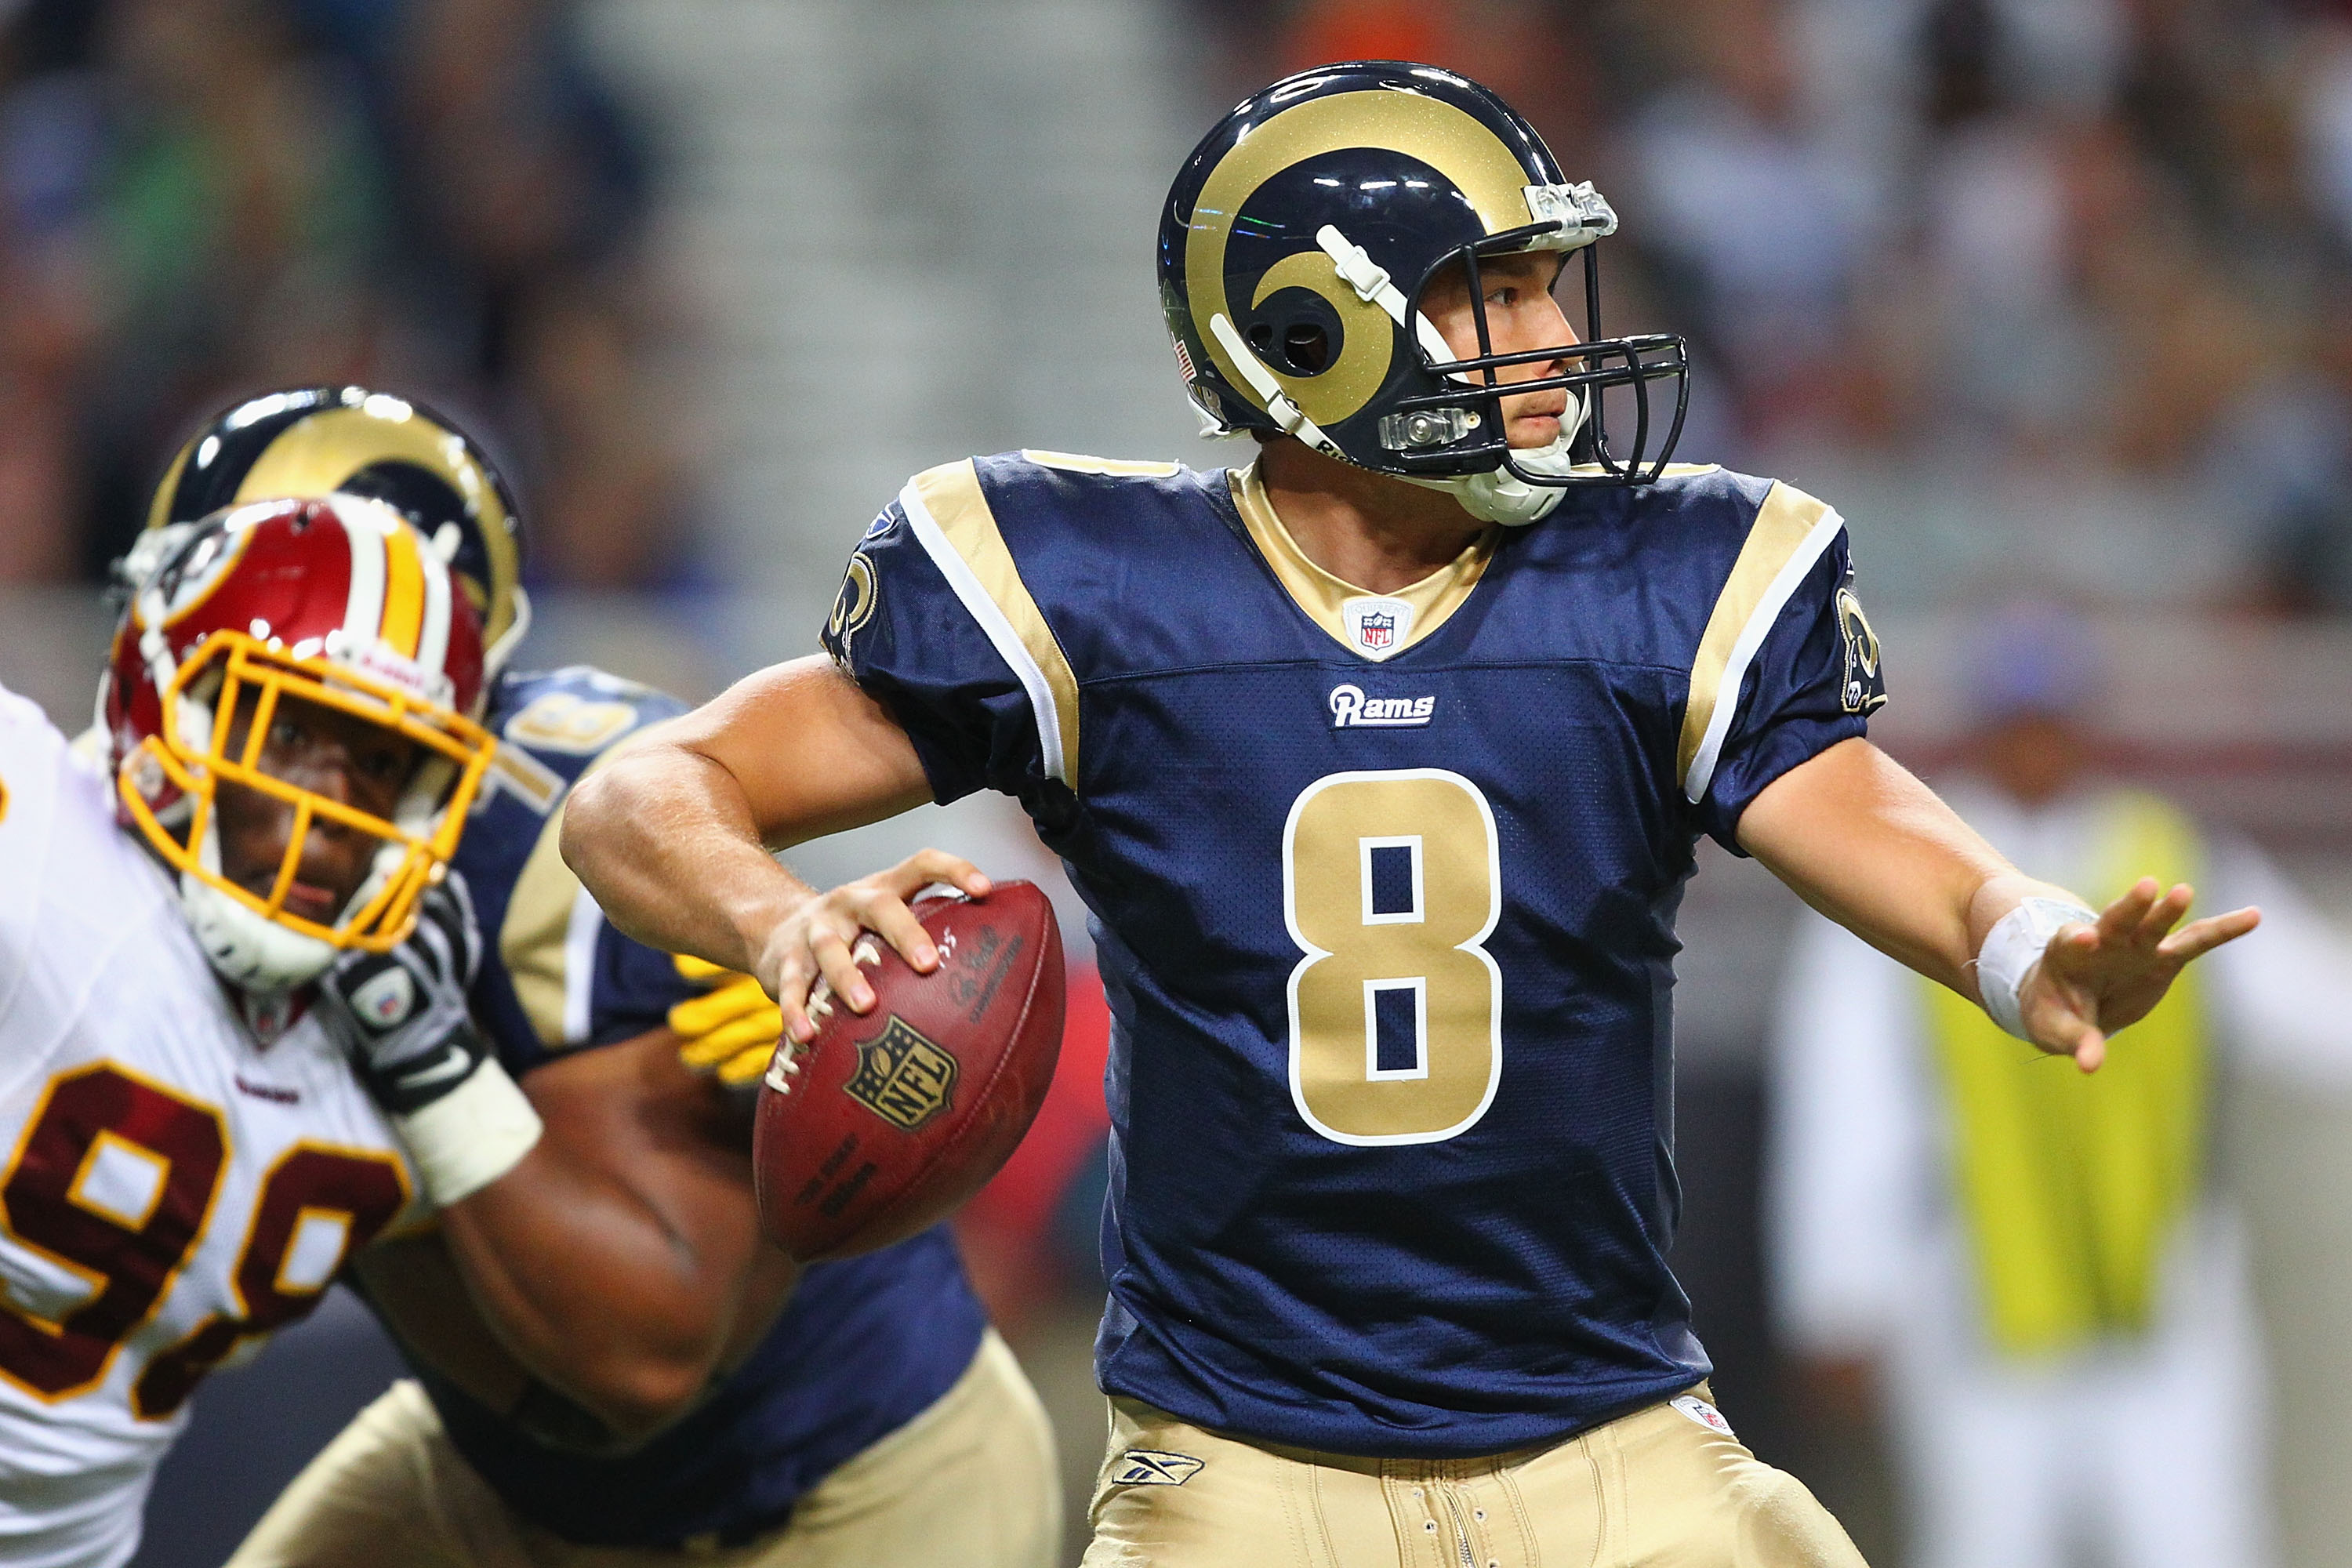 ST. LOUIS - SEPTEMBER 26: Sam Bradford #8 of the St. Louis Rams passes against the Washington Redskins at the Edward Jones Dome on September 26, 2010 in St. Louis, Missouri.  The Rams beat the Redskins 30-16.  (Photo by Dilip Vishwanat/Getty Images)